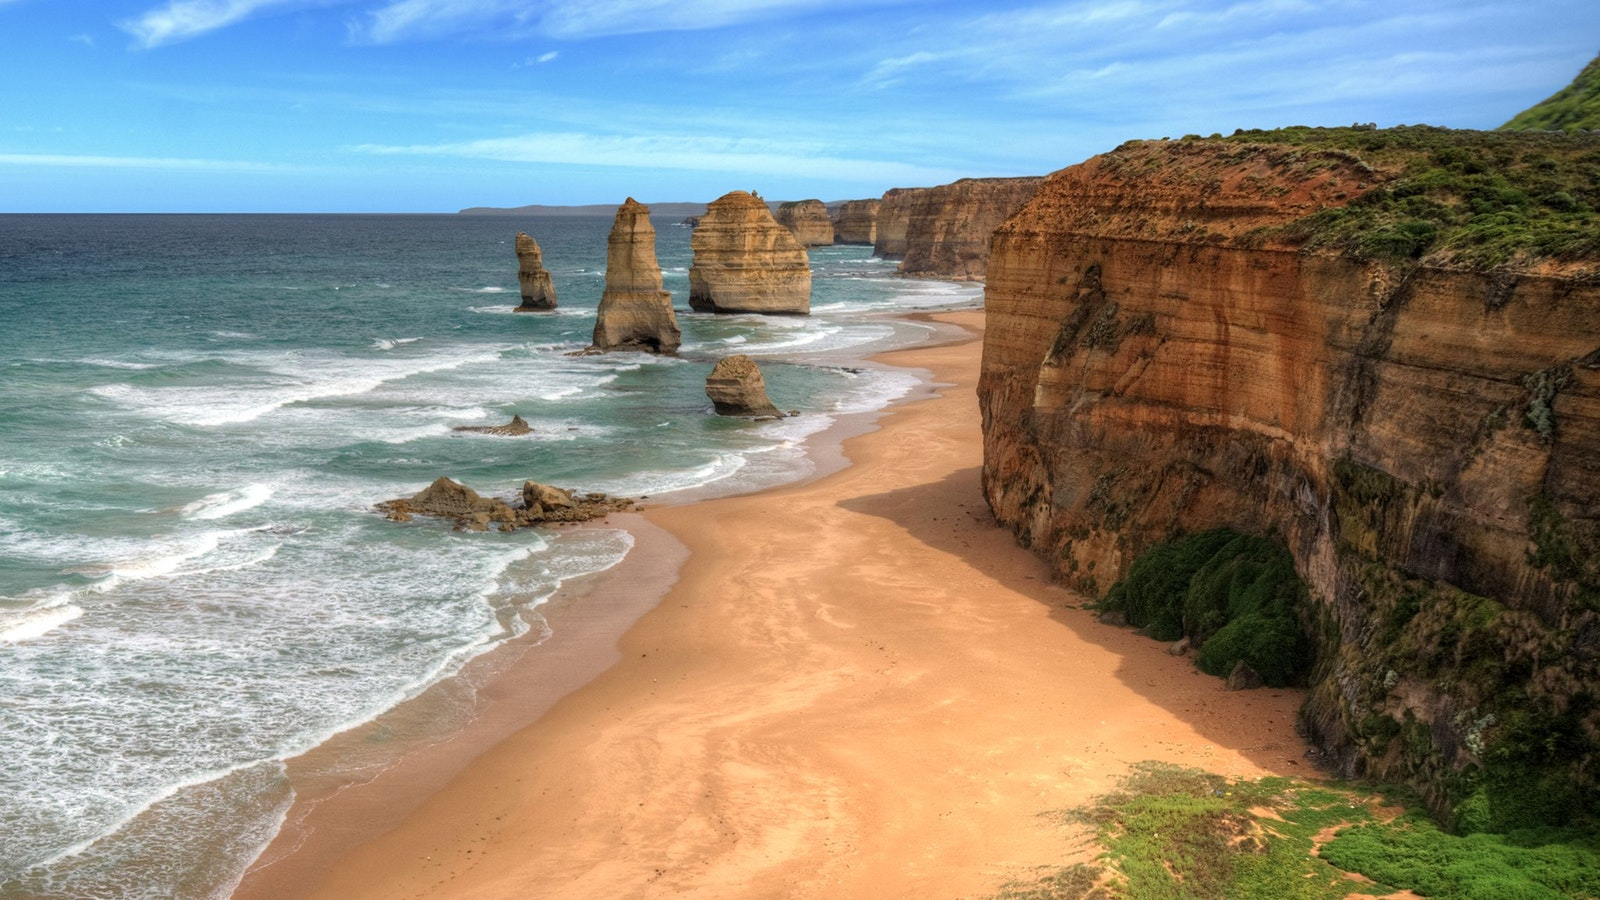 Capture the iconic 12 Apostles in all its glory on the Great Ocean Road Tour, Port Campbell